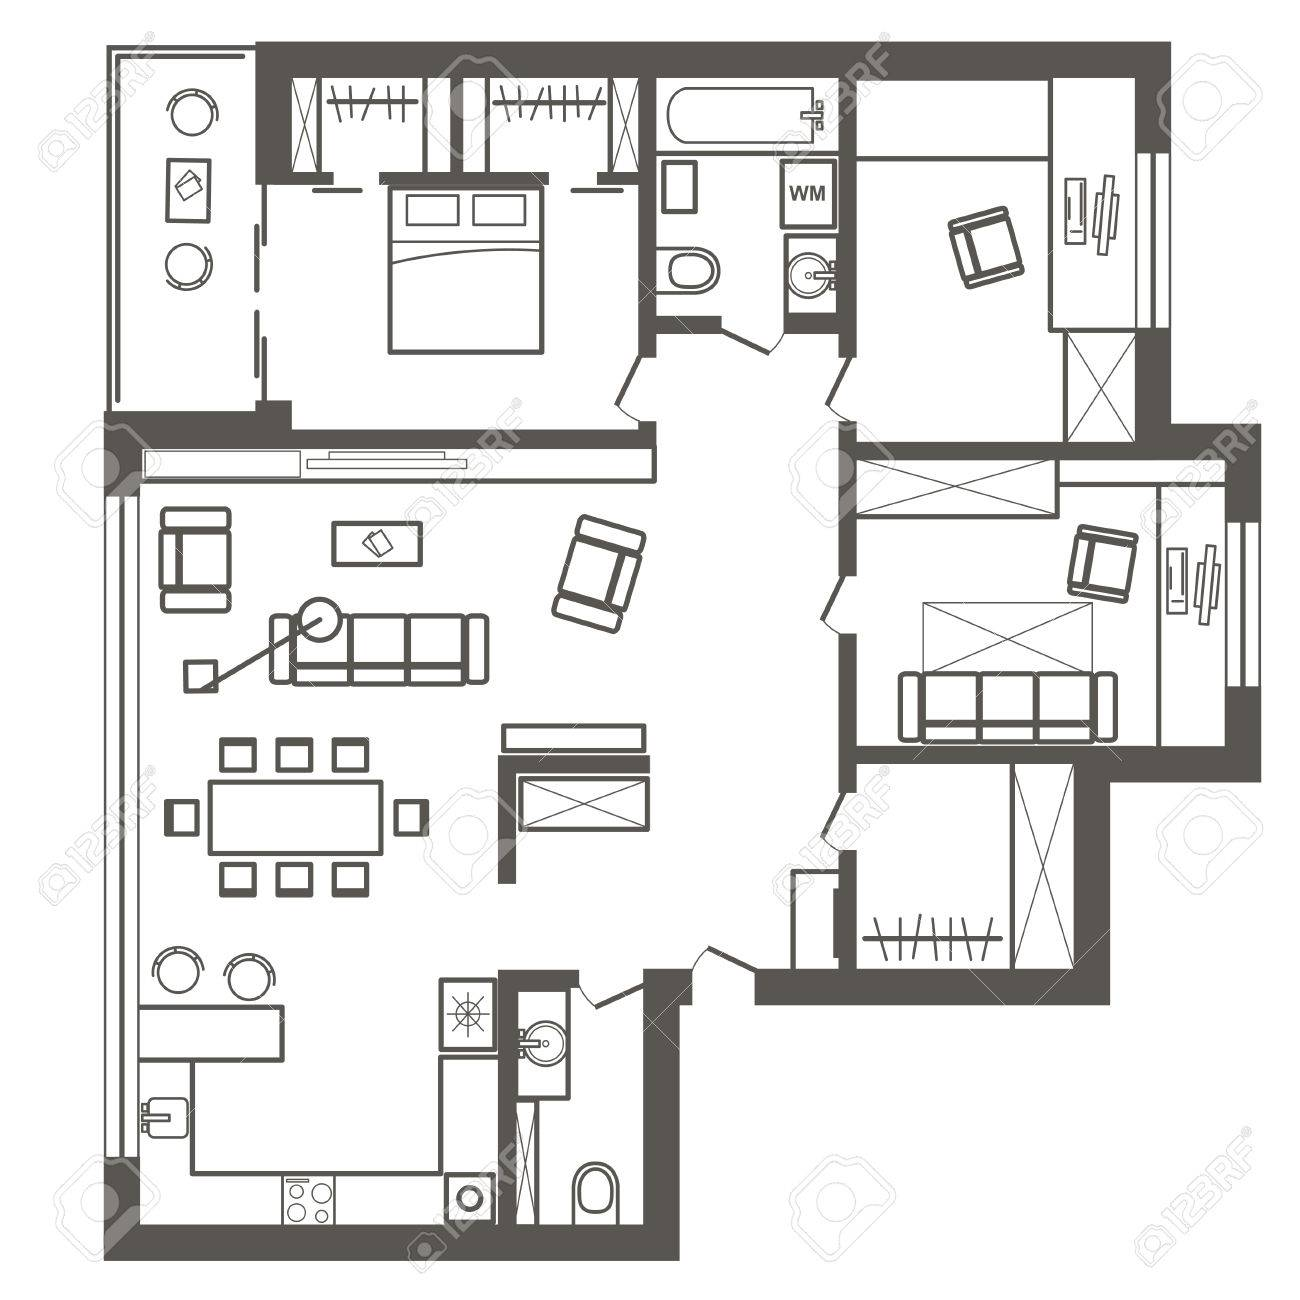 Linear Architectural Sketch Plan Of Three Bedroom Apartment Stock Vector